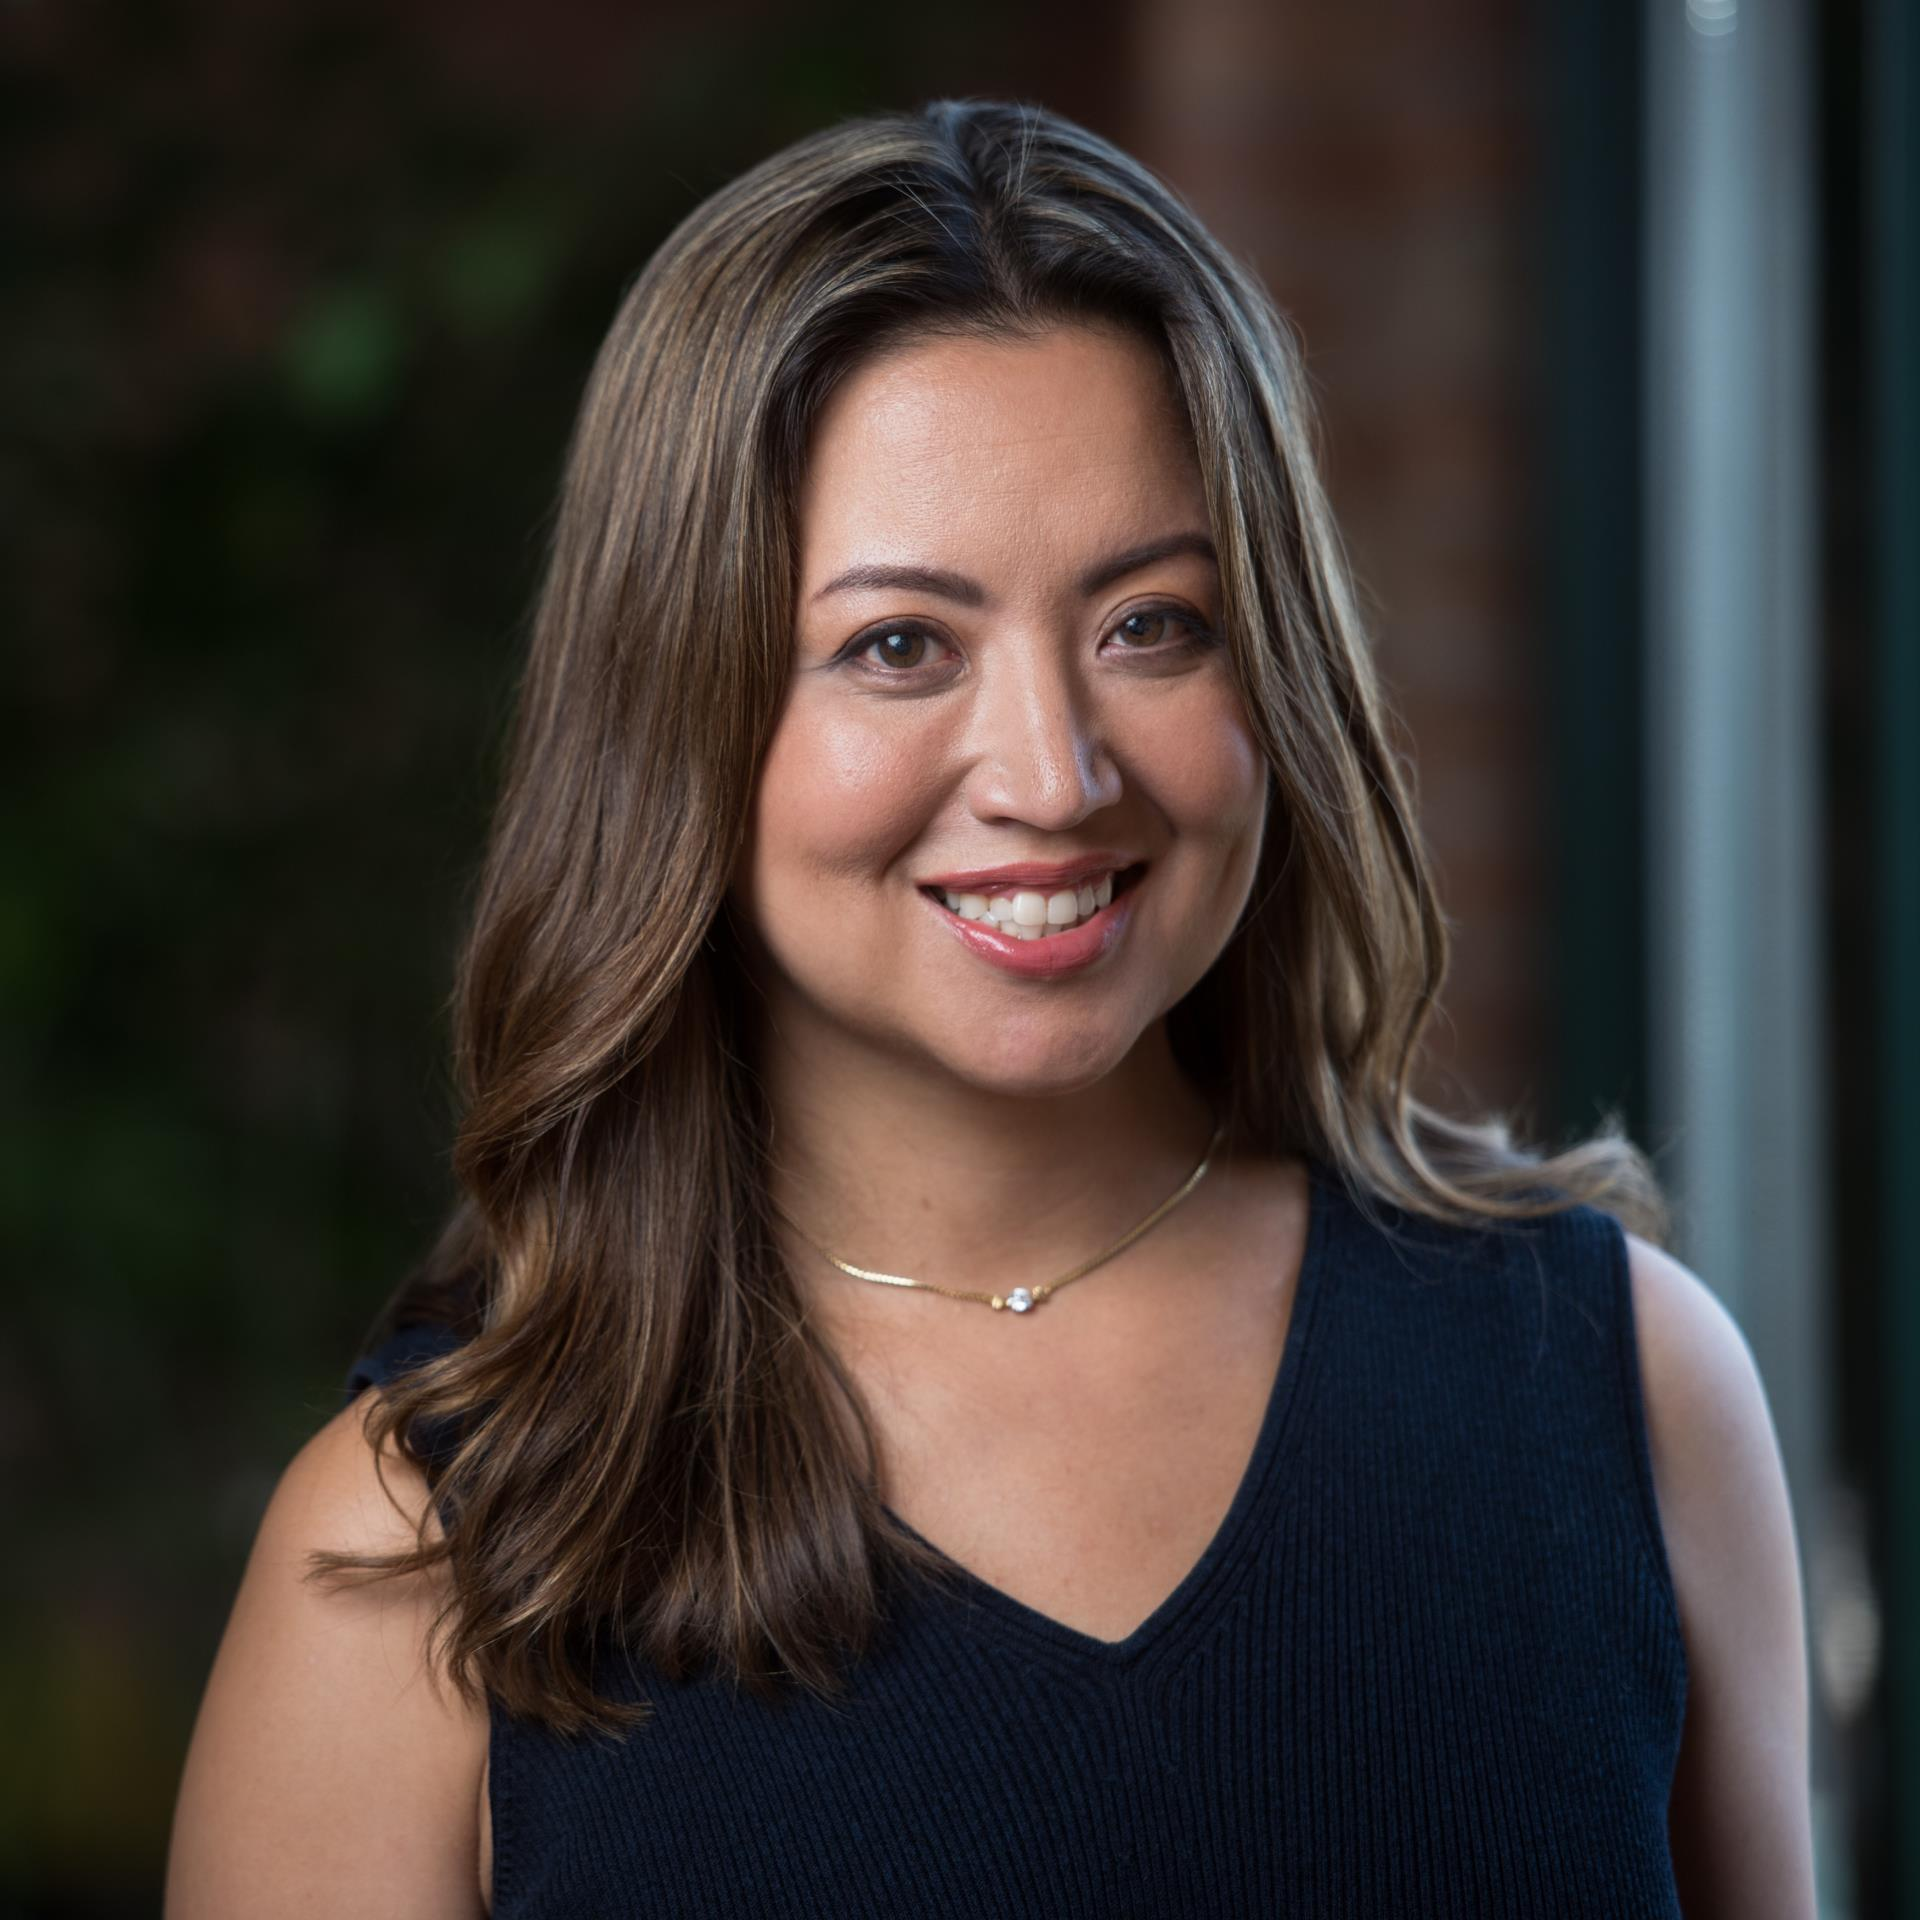 Chicago Venture Capitalist Rumi Morales Joins UK Blockchain Investment Firm